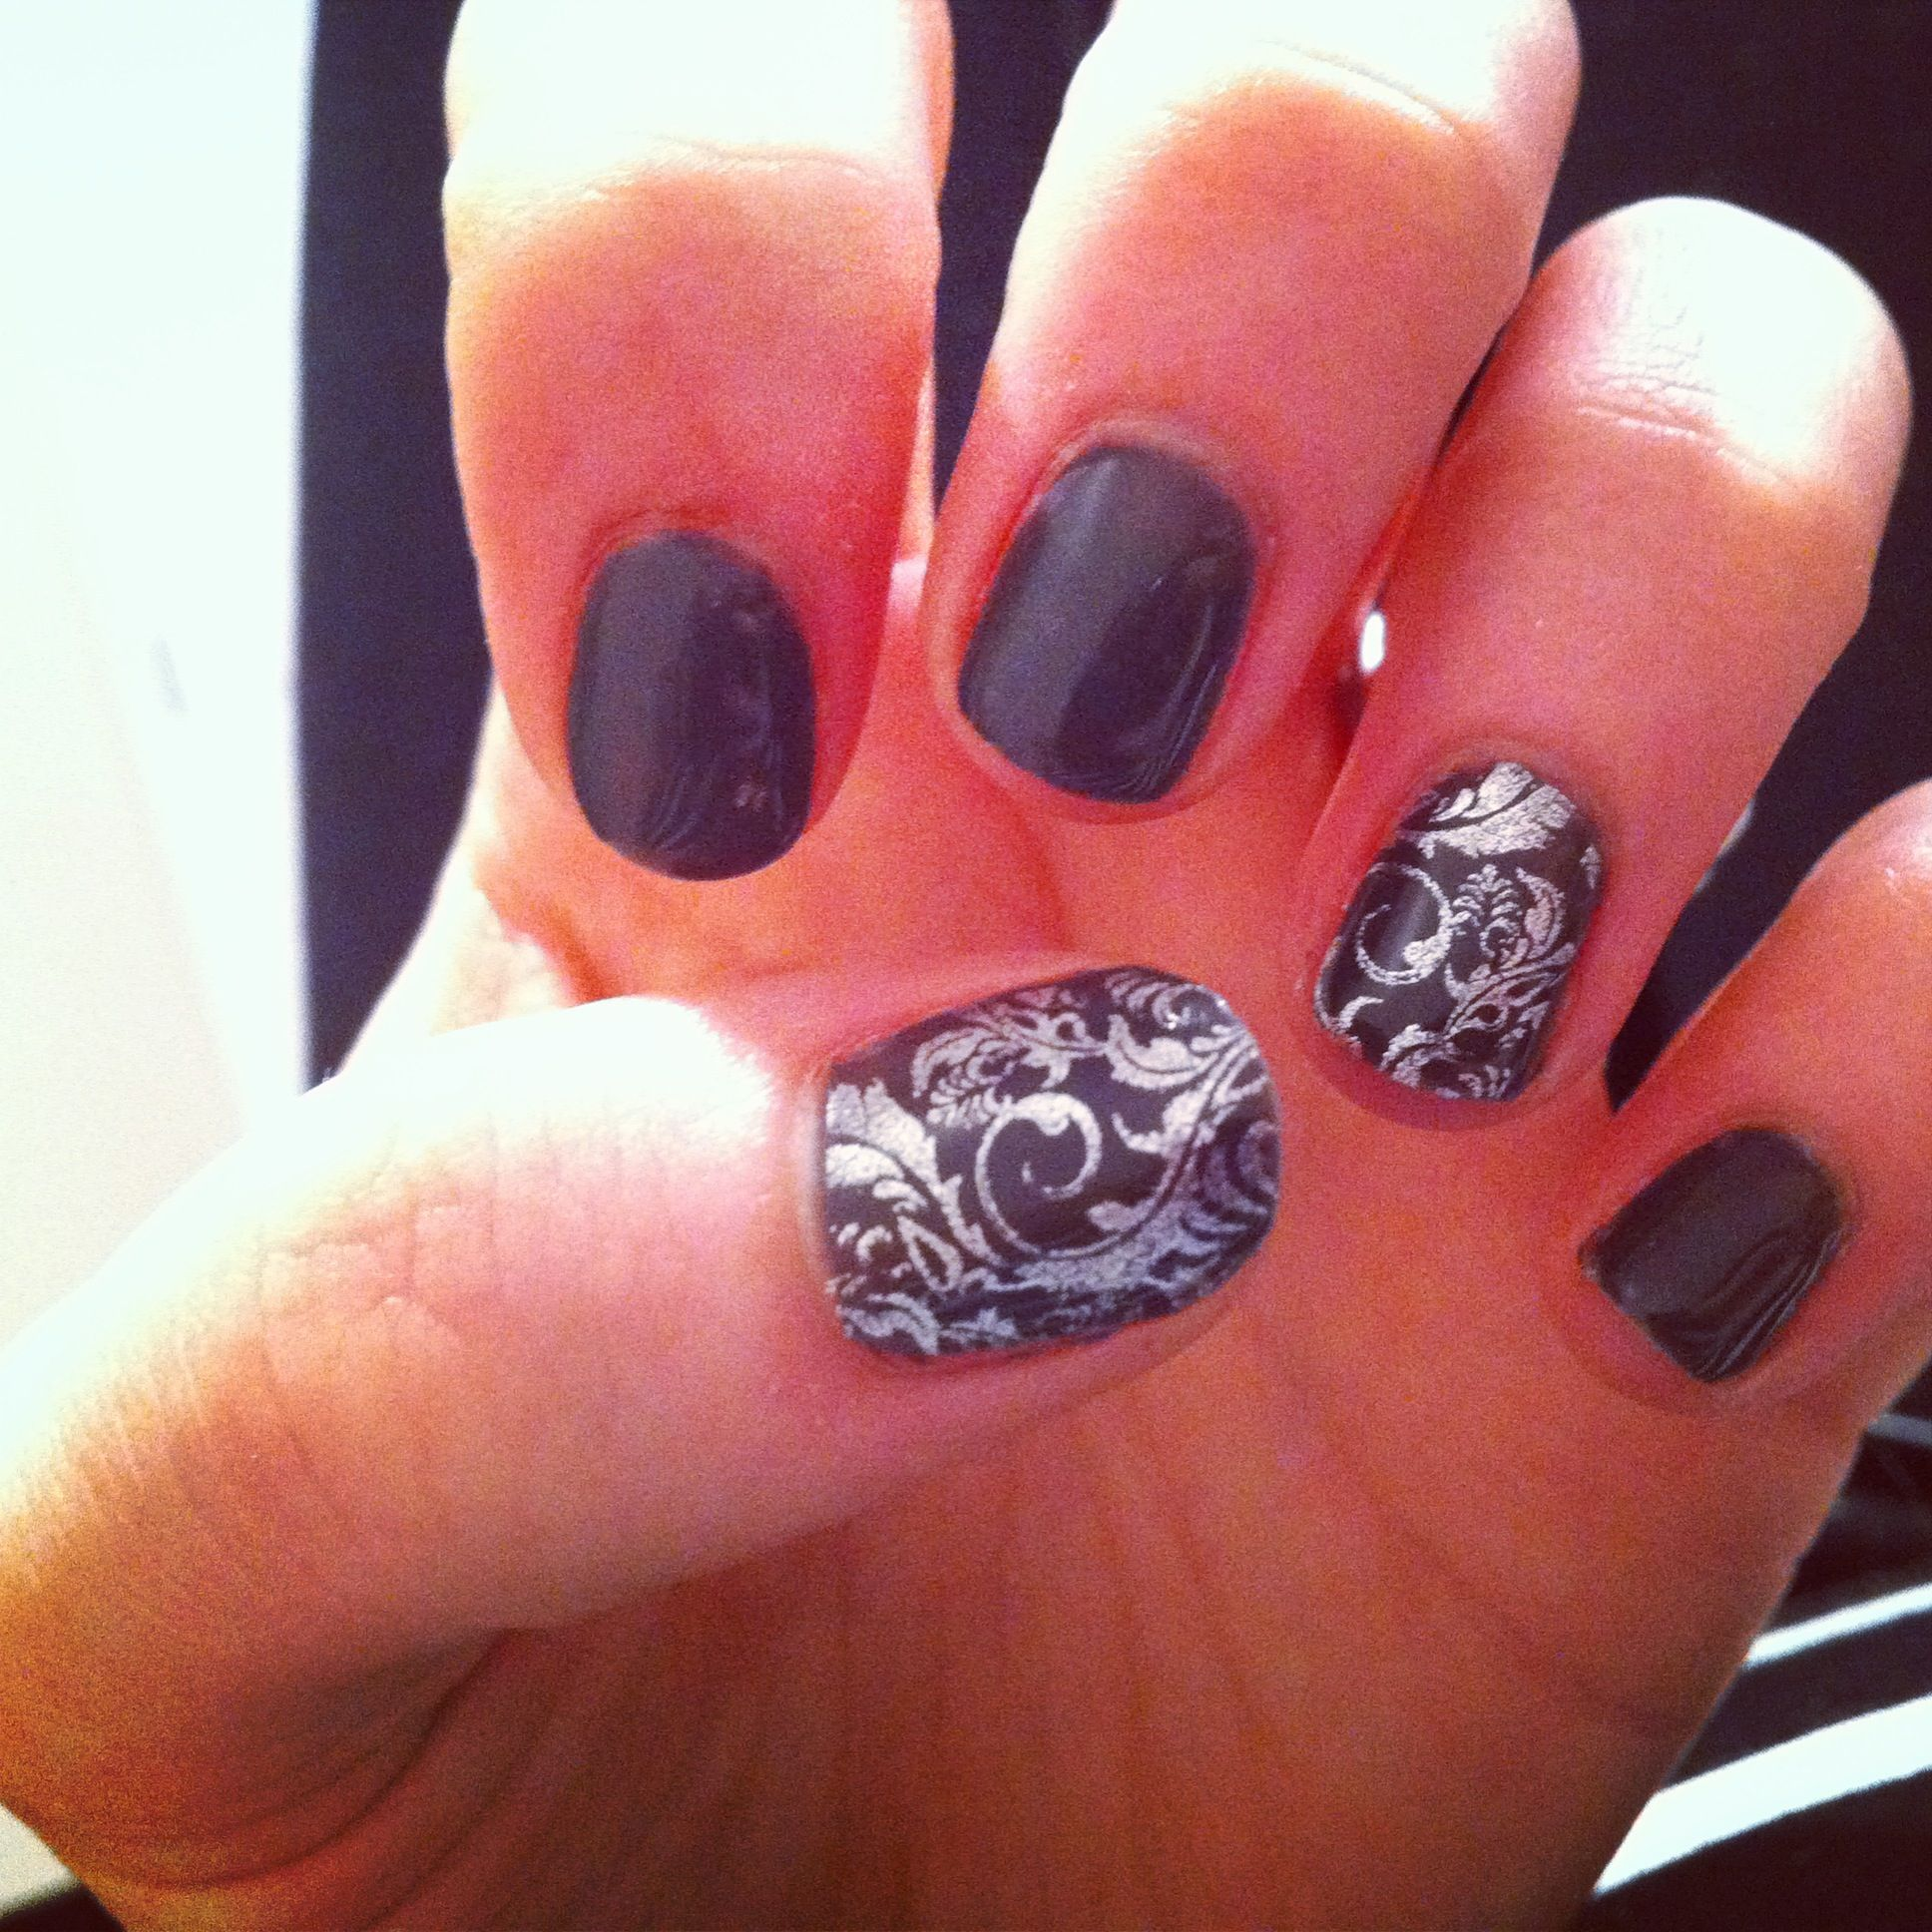 Shellac nails. I love the design | Nails | Pinterest